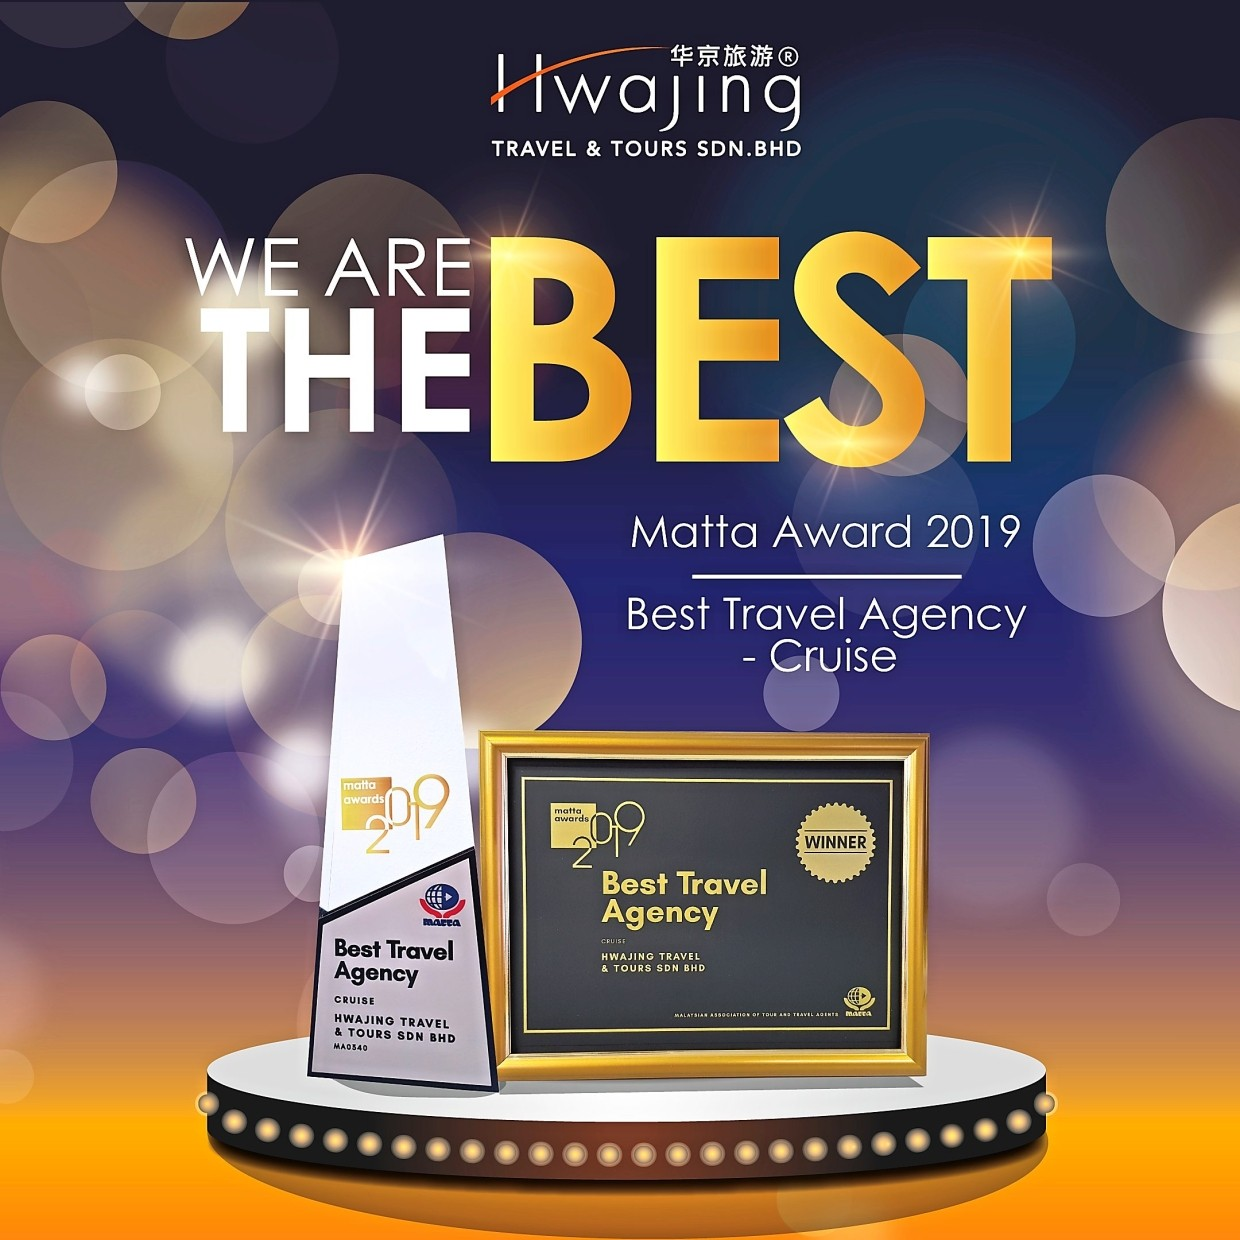 Hwajing was named the Best Travel Agency for Cruise at the MATTA Travel Awards 2019.